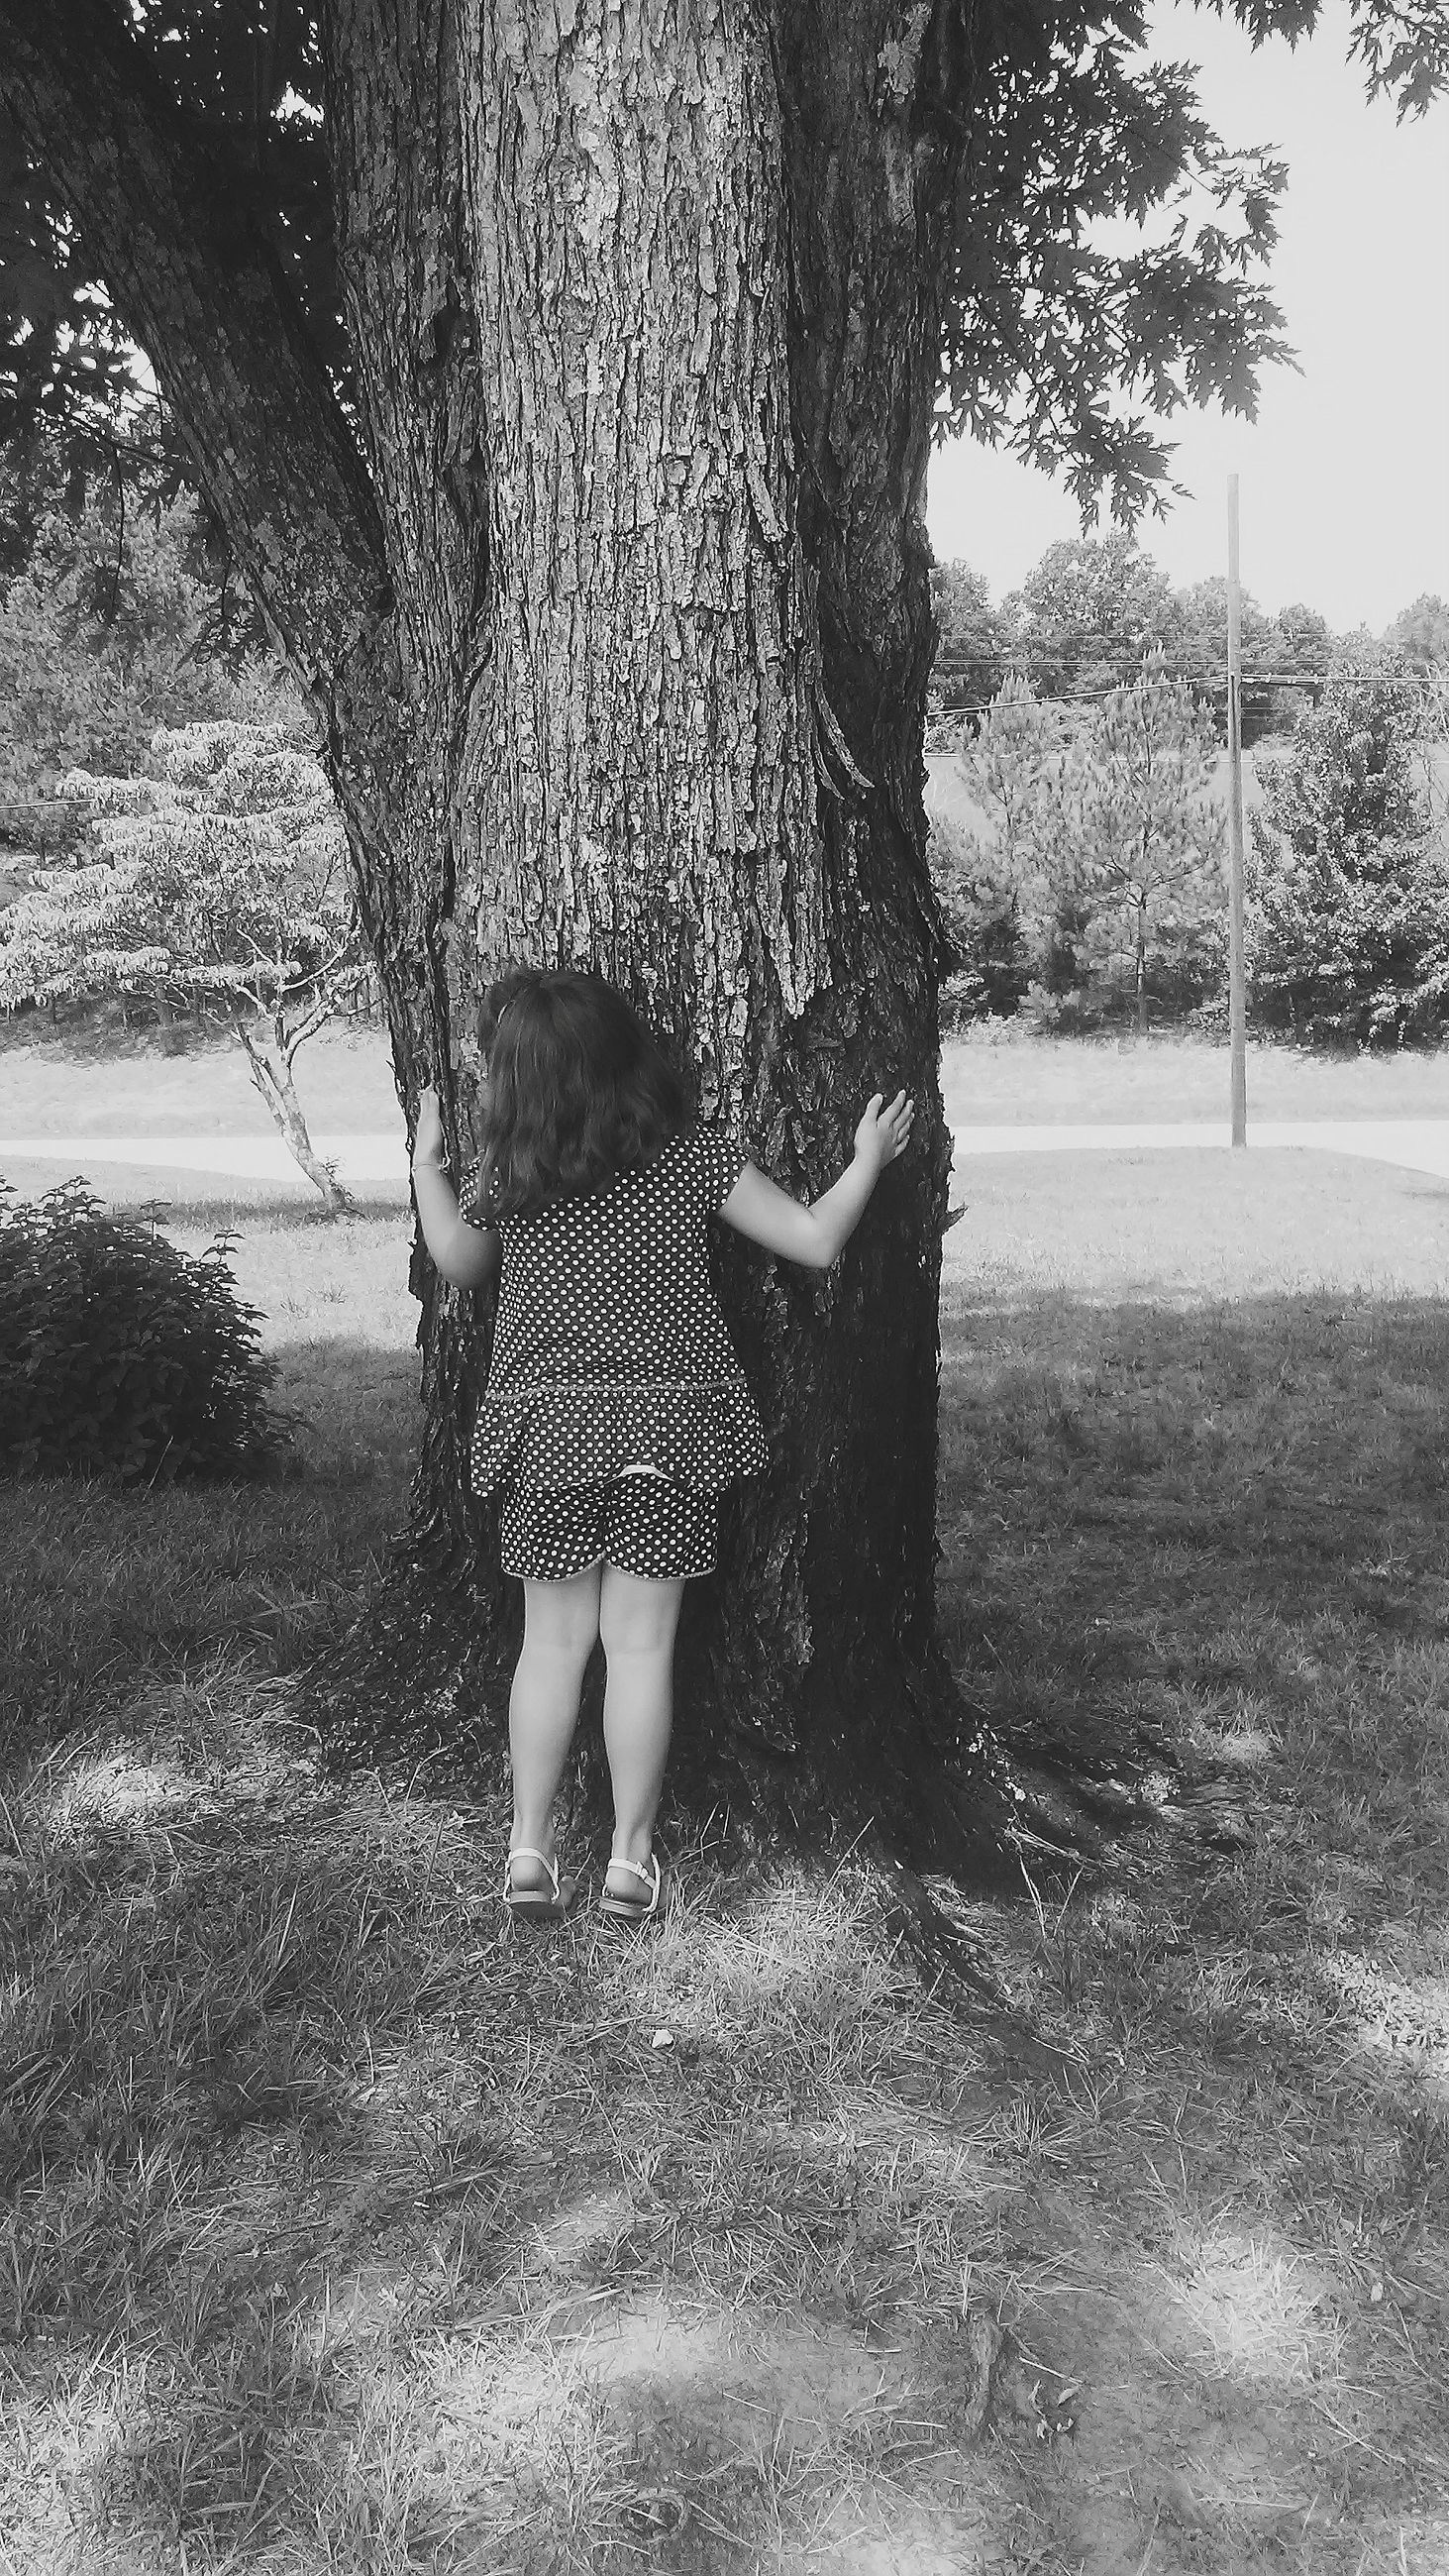 tree, tree trunk, real people, rear view, growth, leisure activity, childhood, day, full length, girls, nature, lifestyles, field, outdoors, standing, grass, hugging, beauty in nature, branch, people